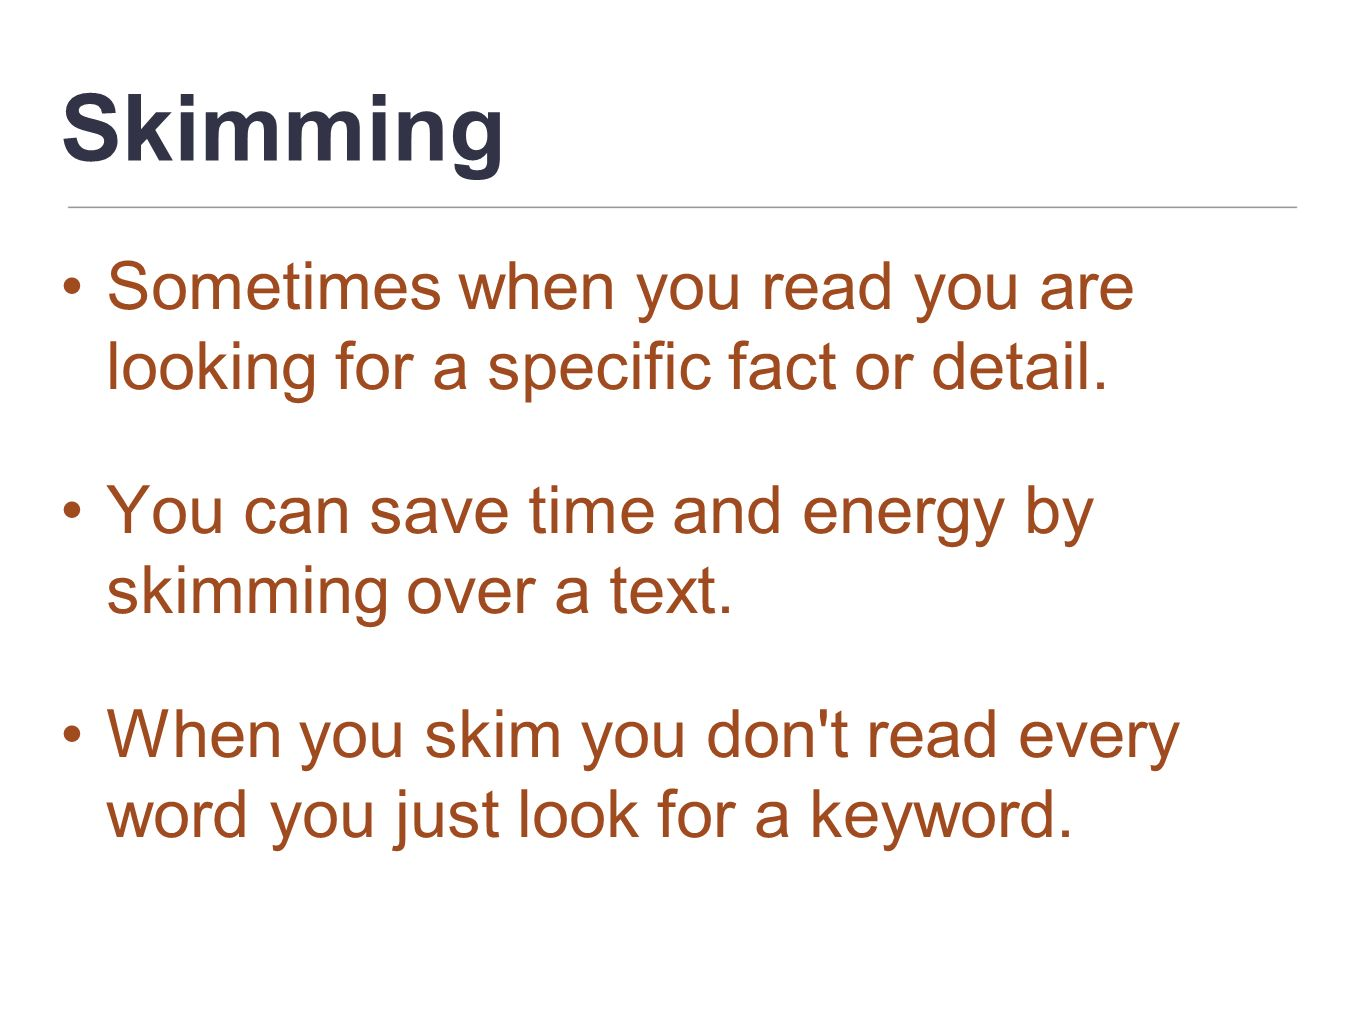 Skimming Sometimes when you read you are looking for a specific fact or detail. You can save time and energy by skimming over a text.